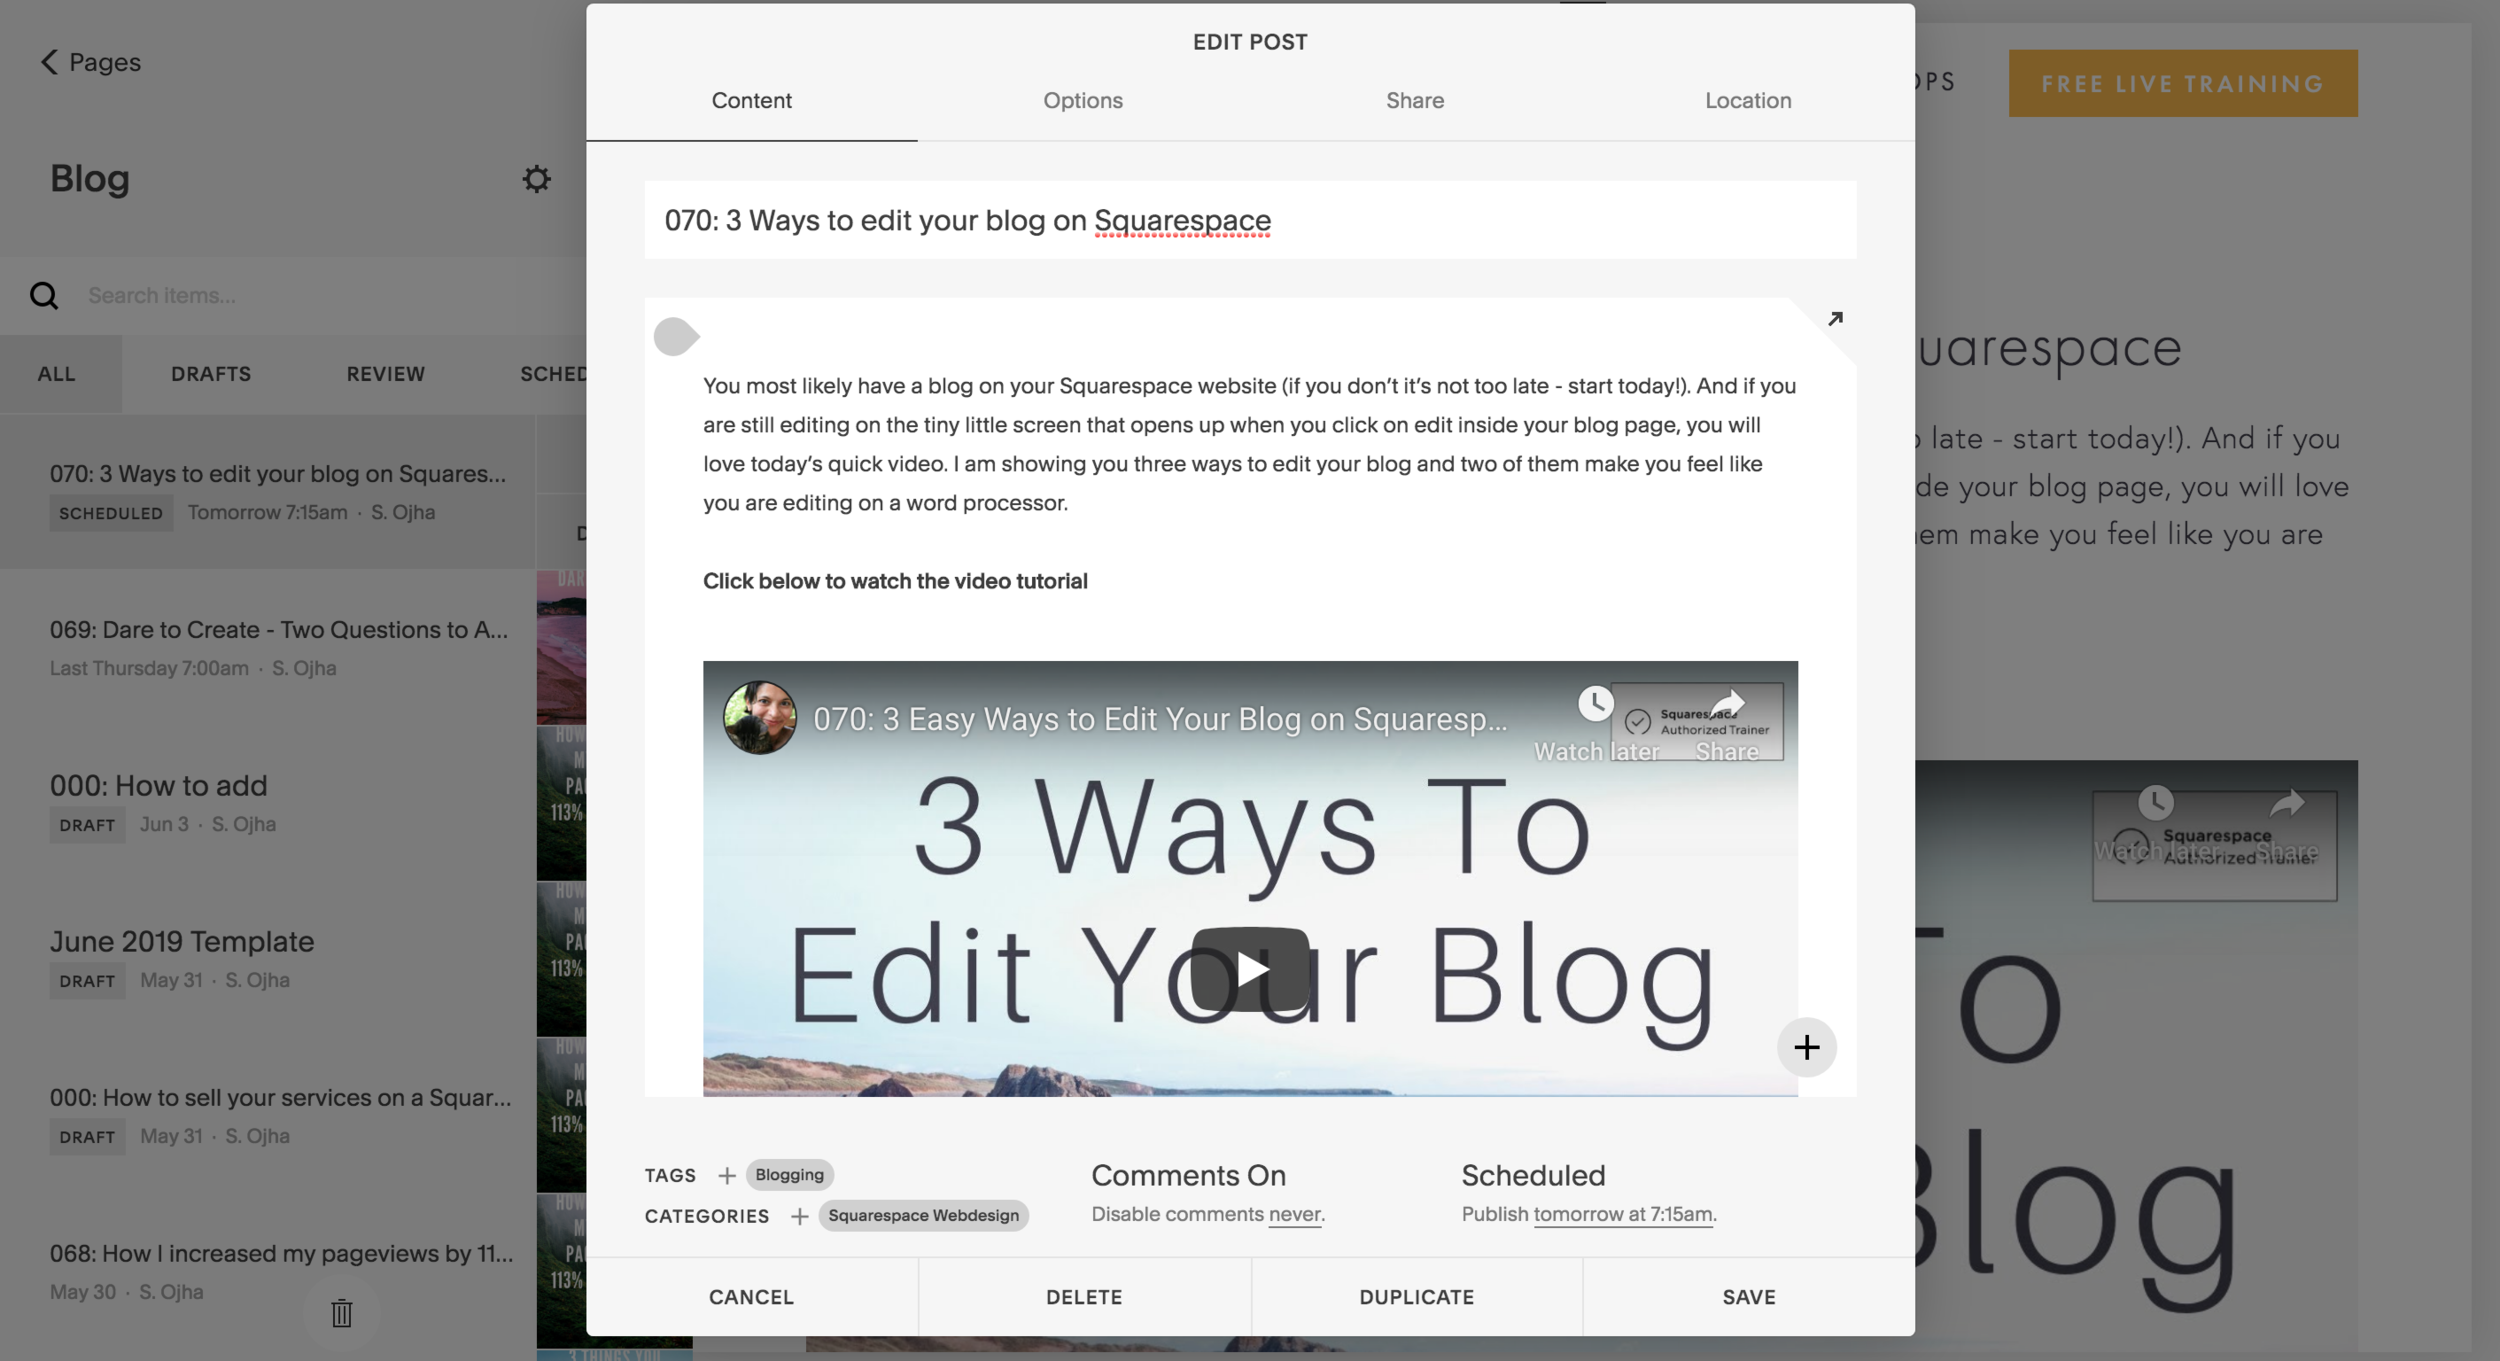 Blog is easy to update on Squarespace